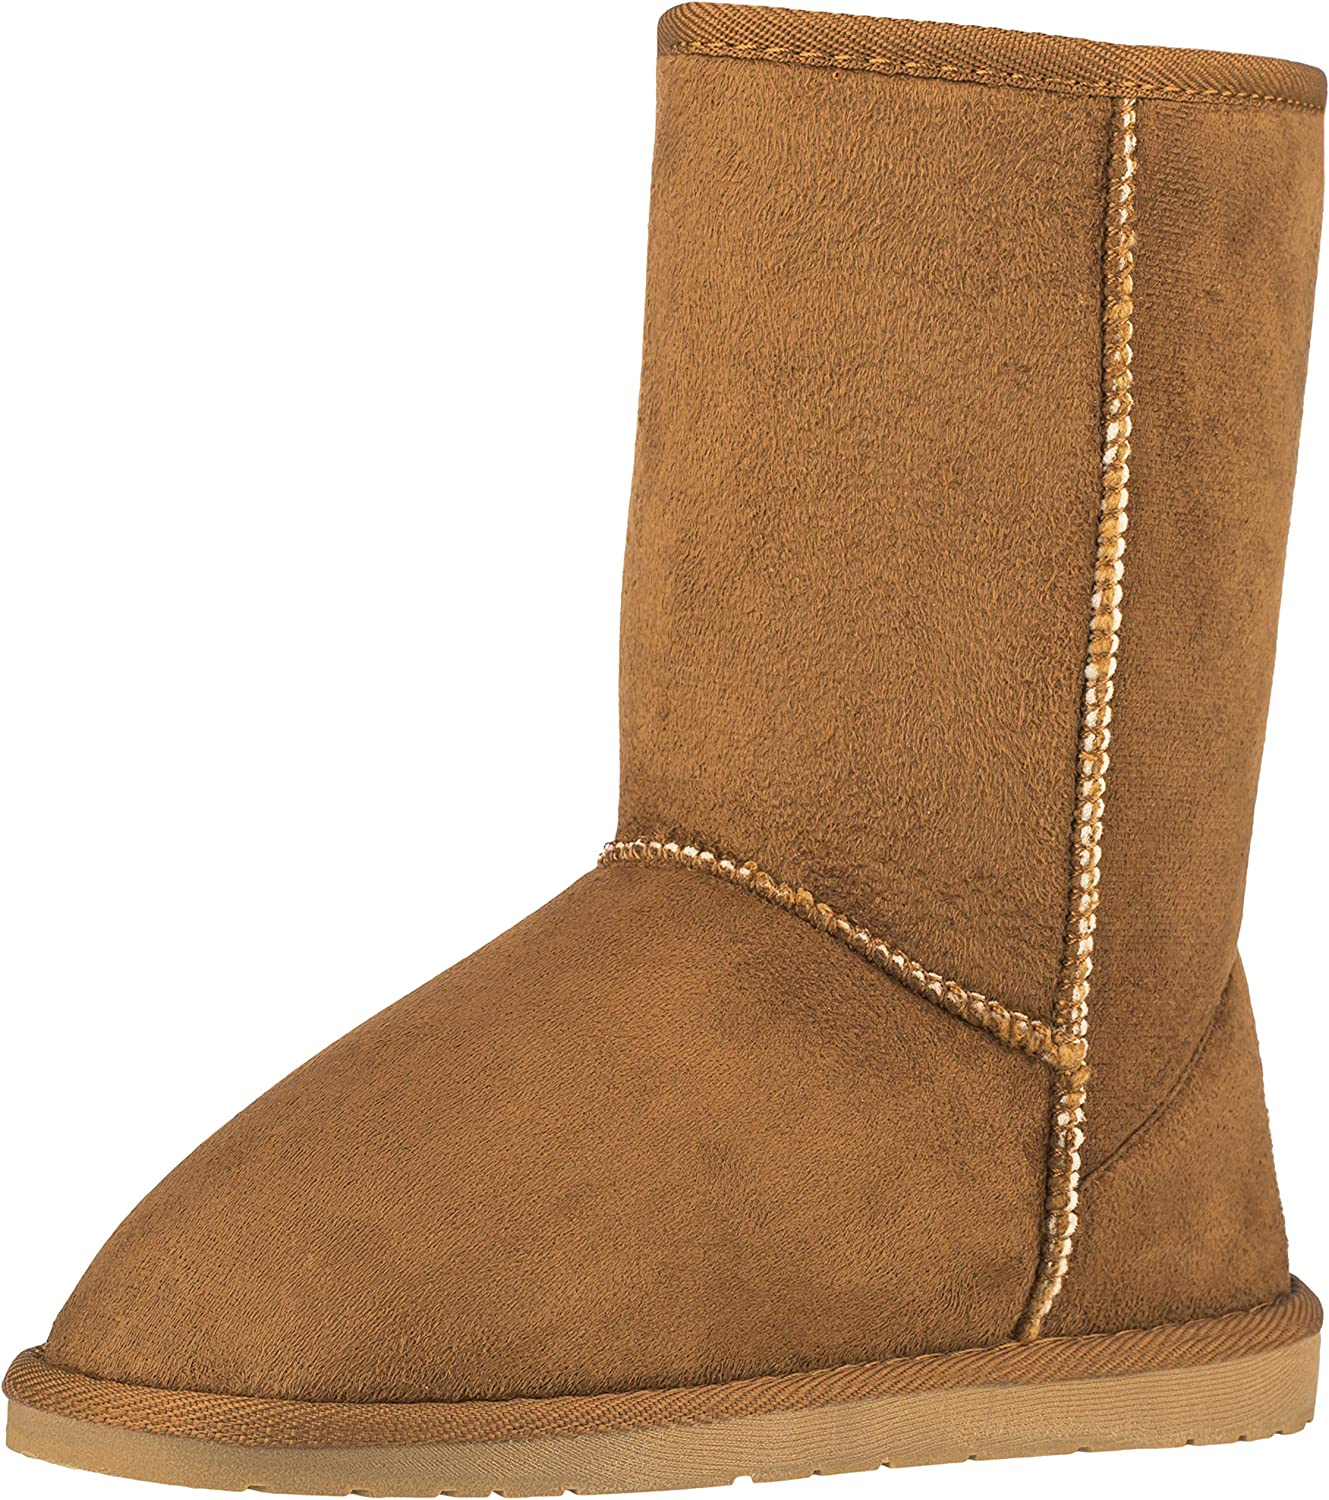 CLOVERLY Women's Winter Snow Boots At the price of surprise Leather Sh Classic Vegan Las Vegas Mall